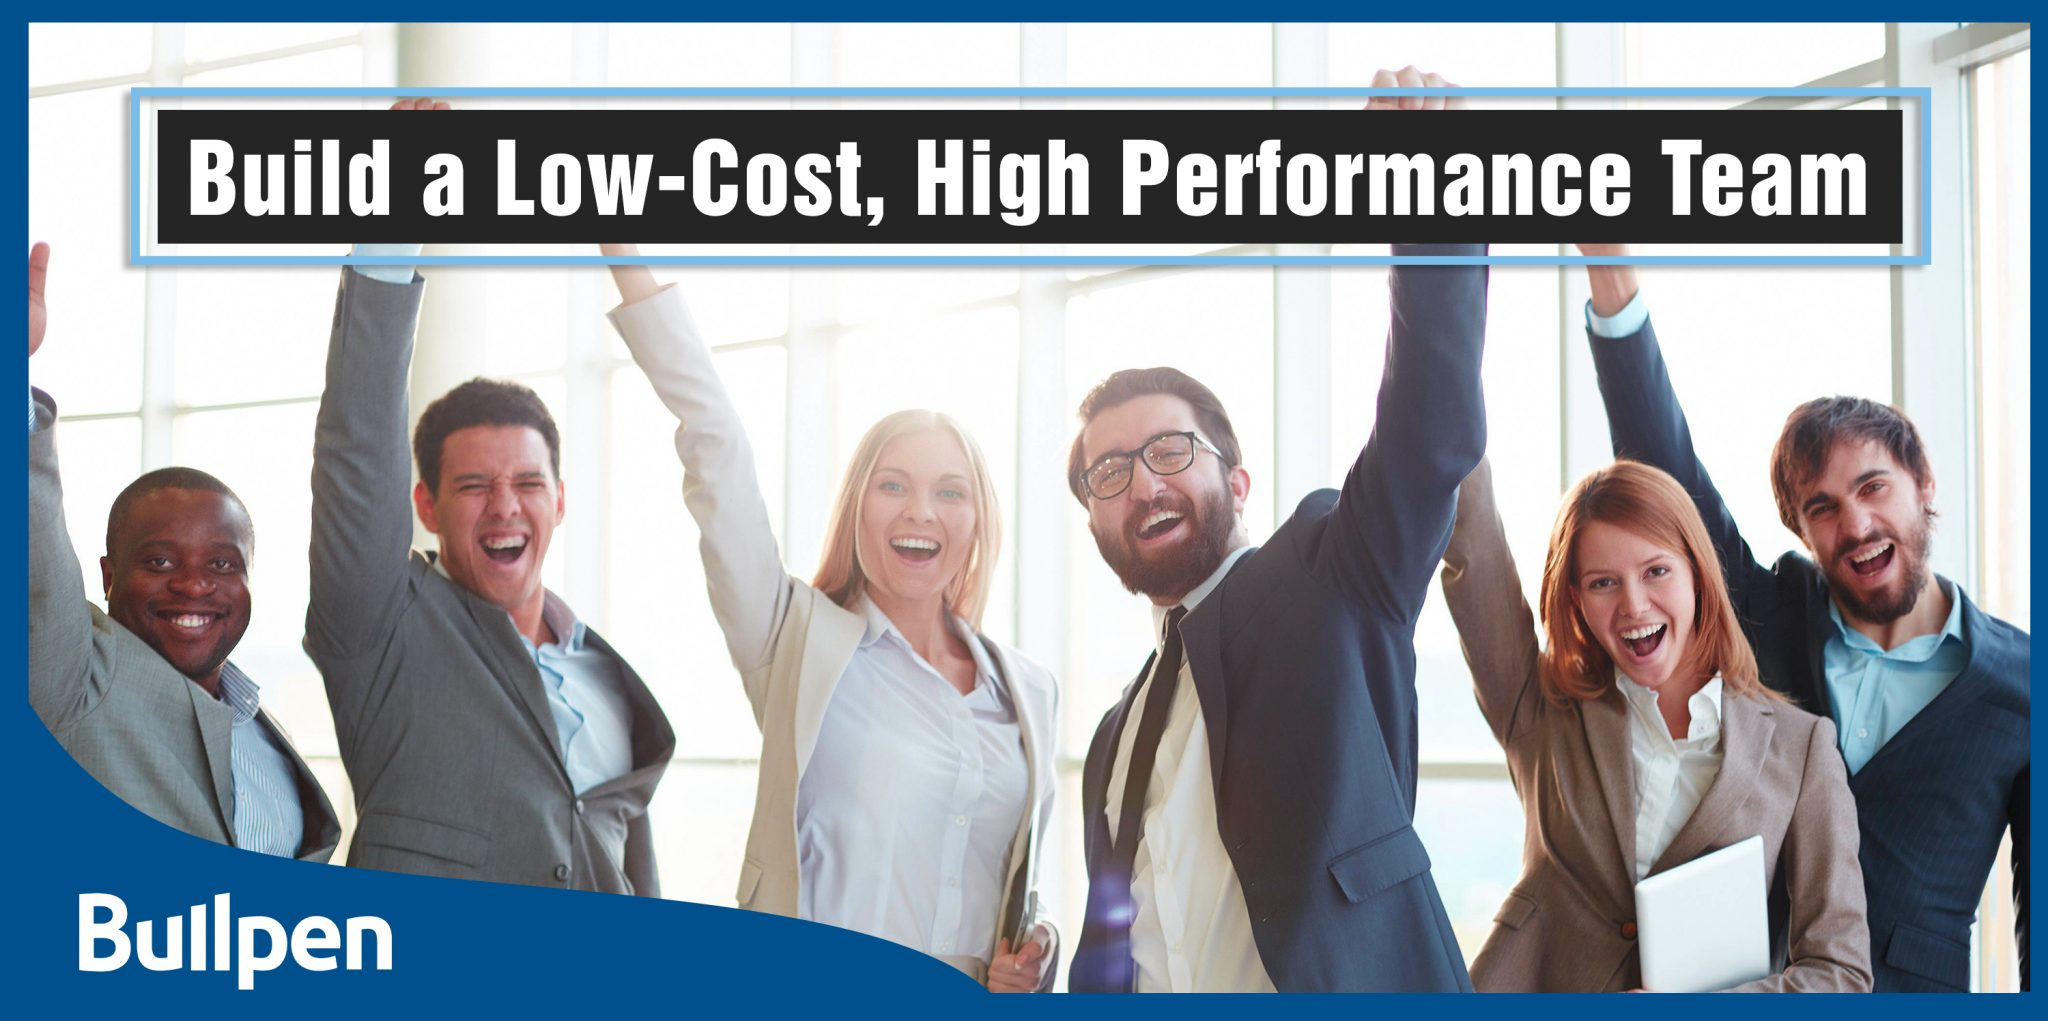 Build a Low-Cost High Performance Team